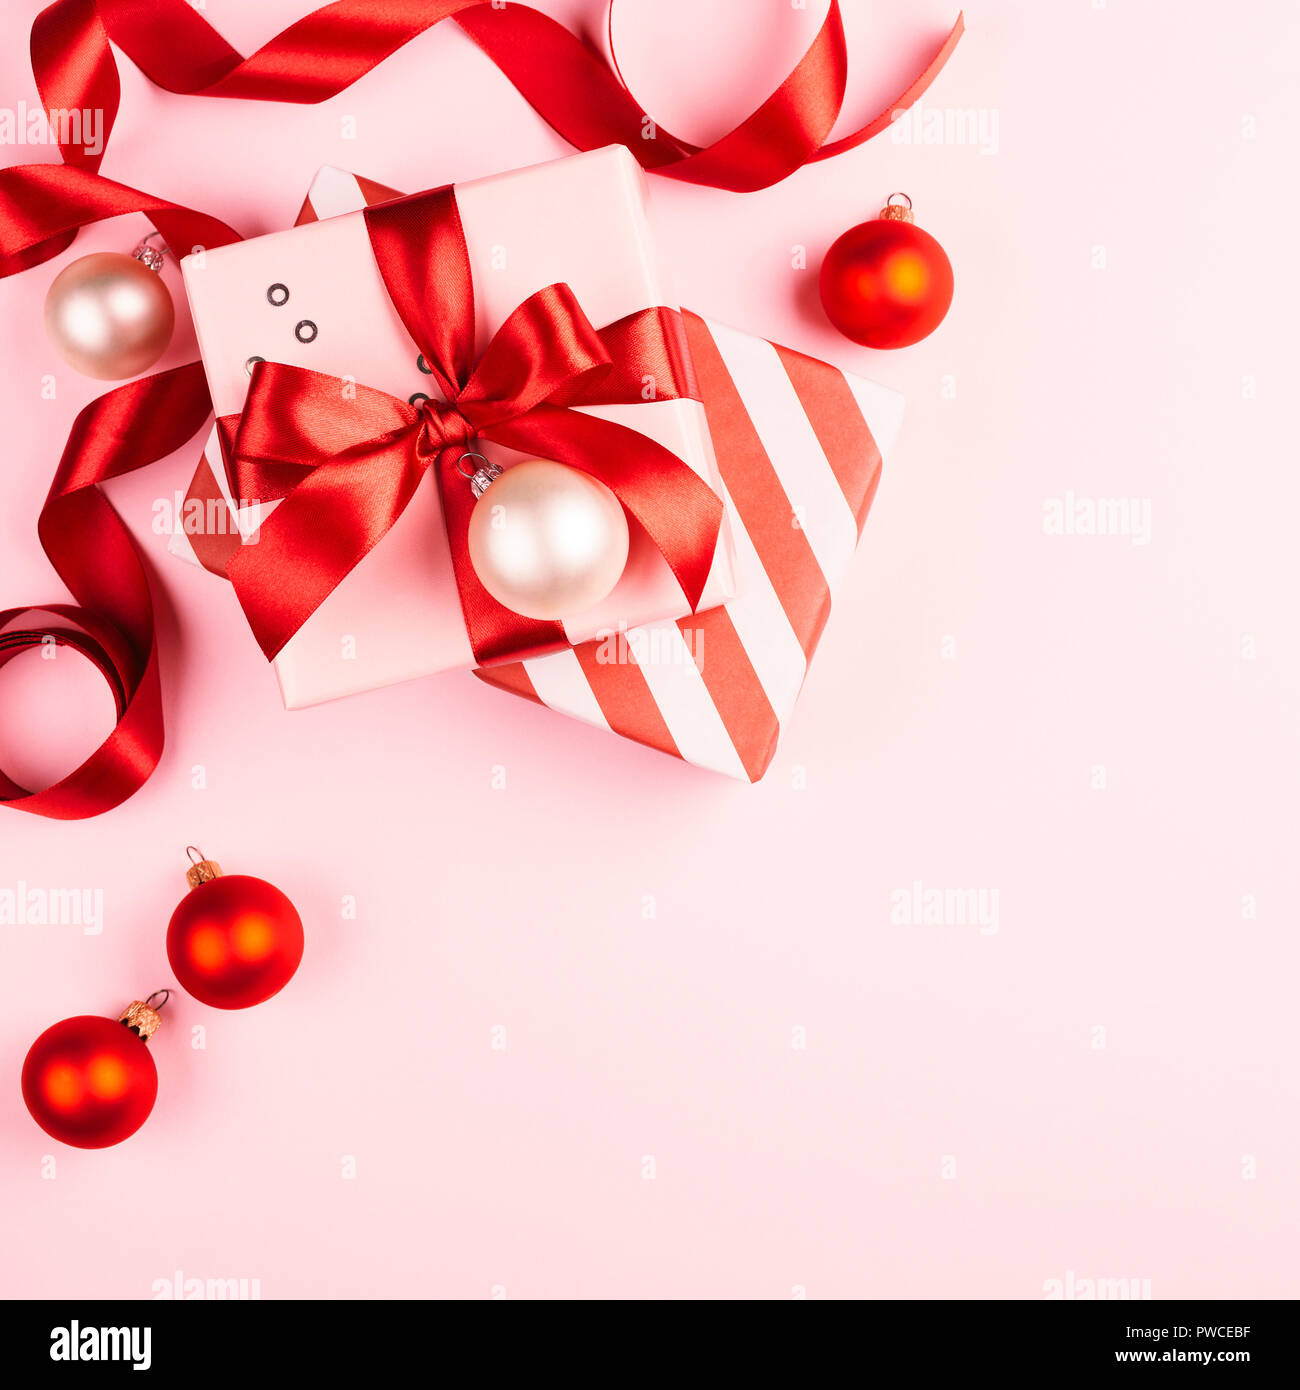 Christmas gifts with red ribbon on pink background with decorations ...